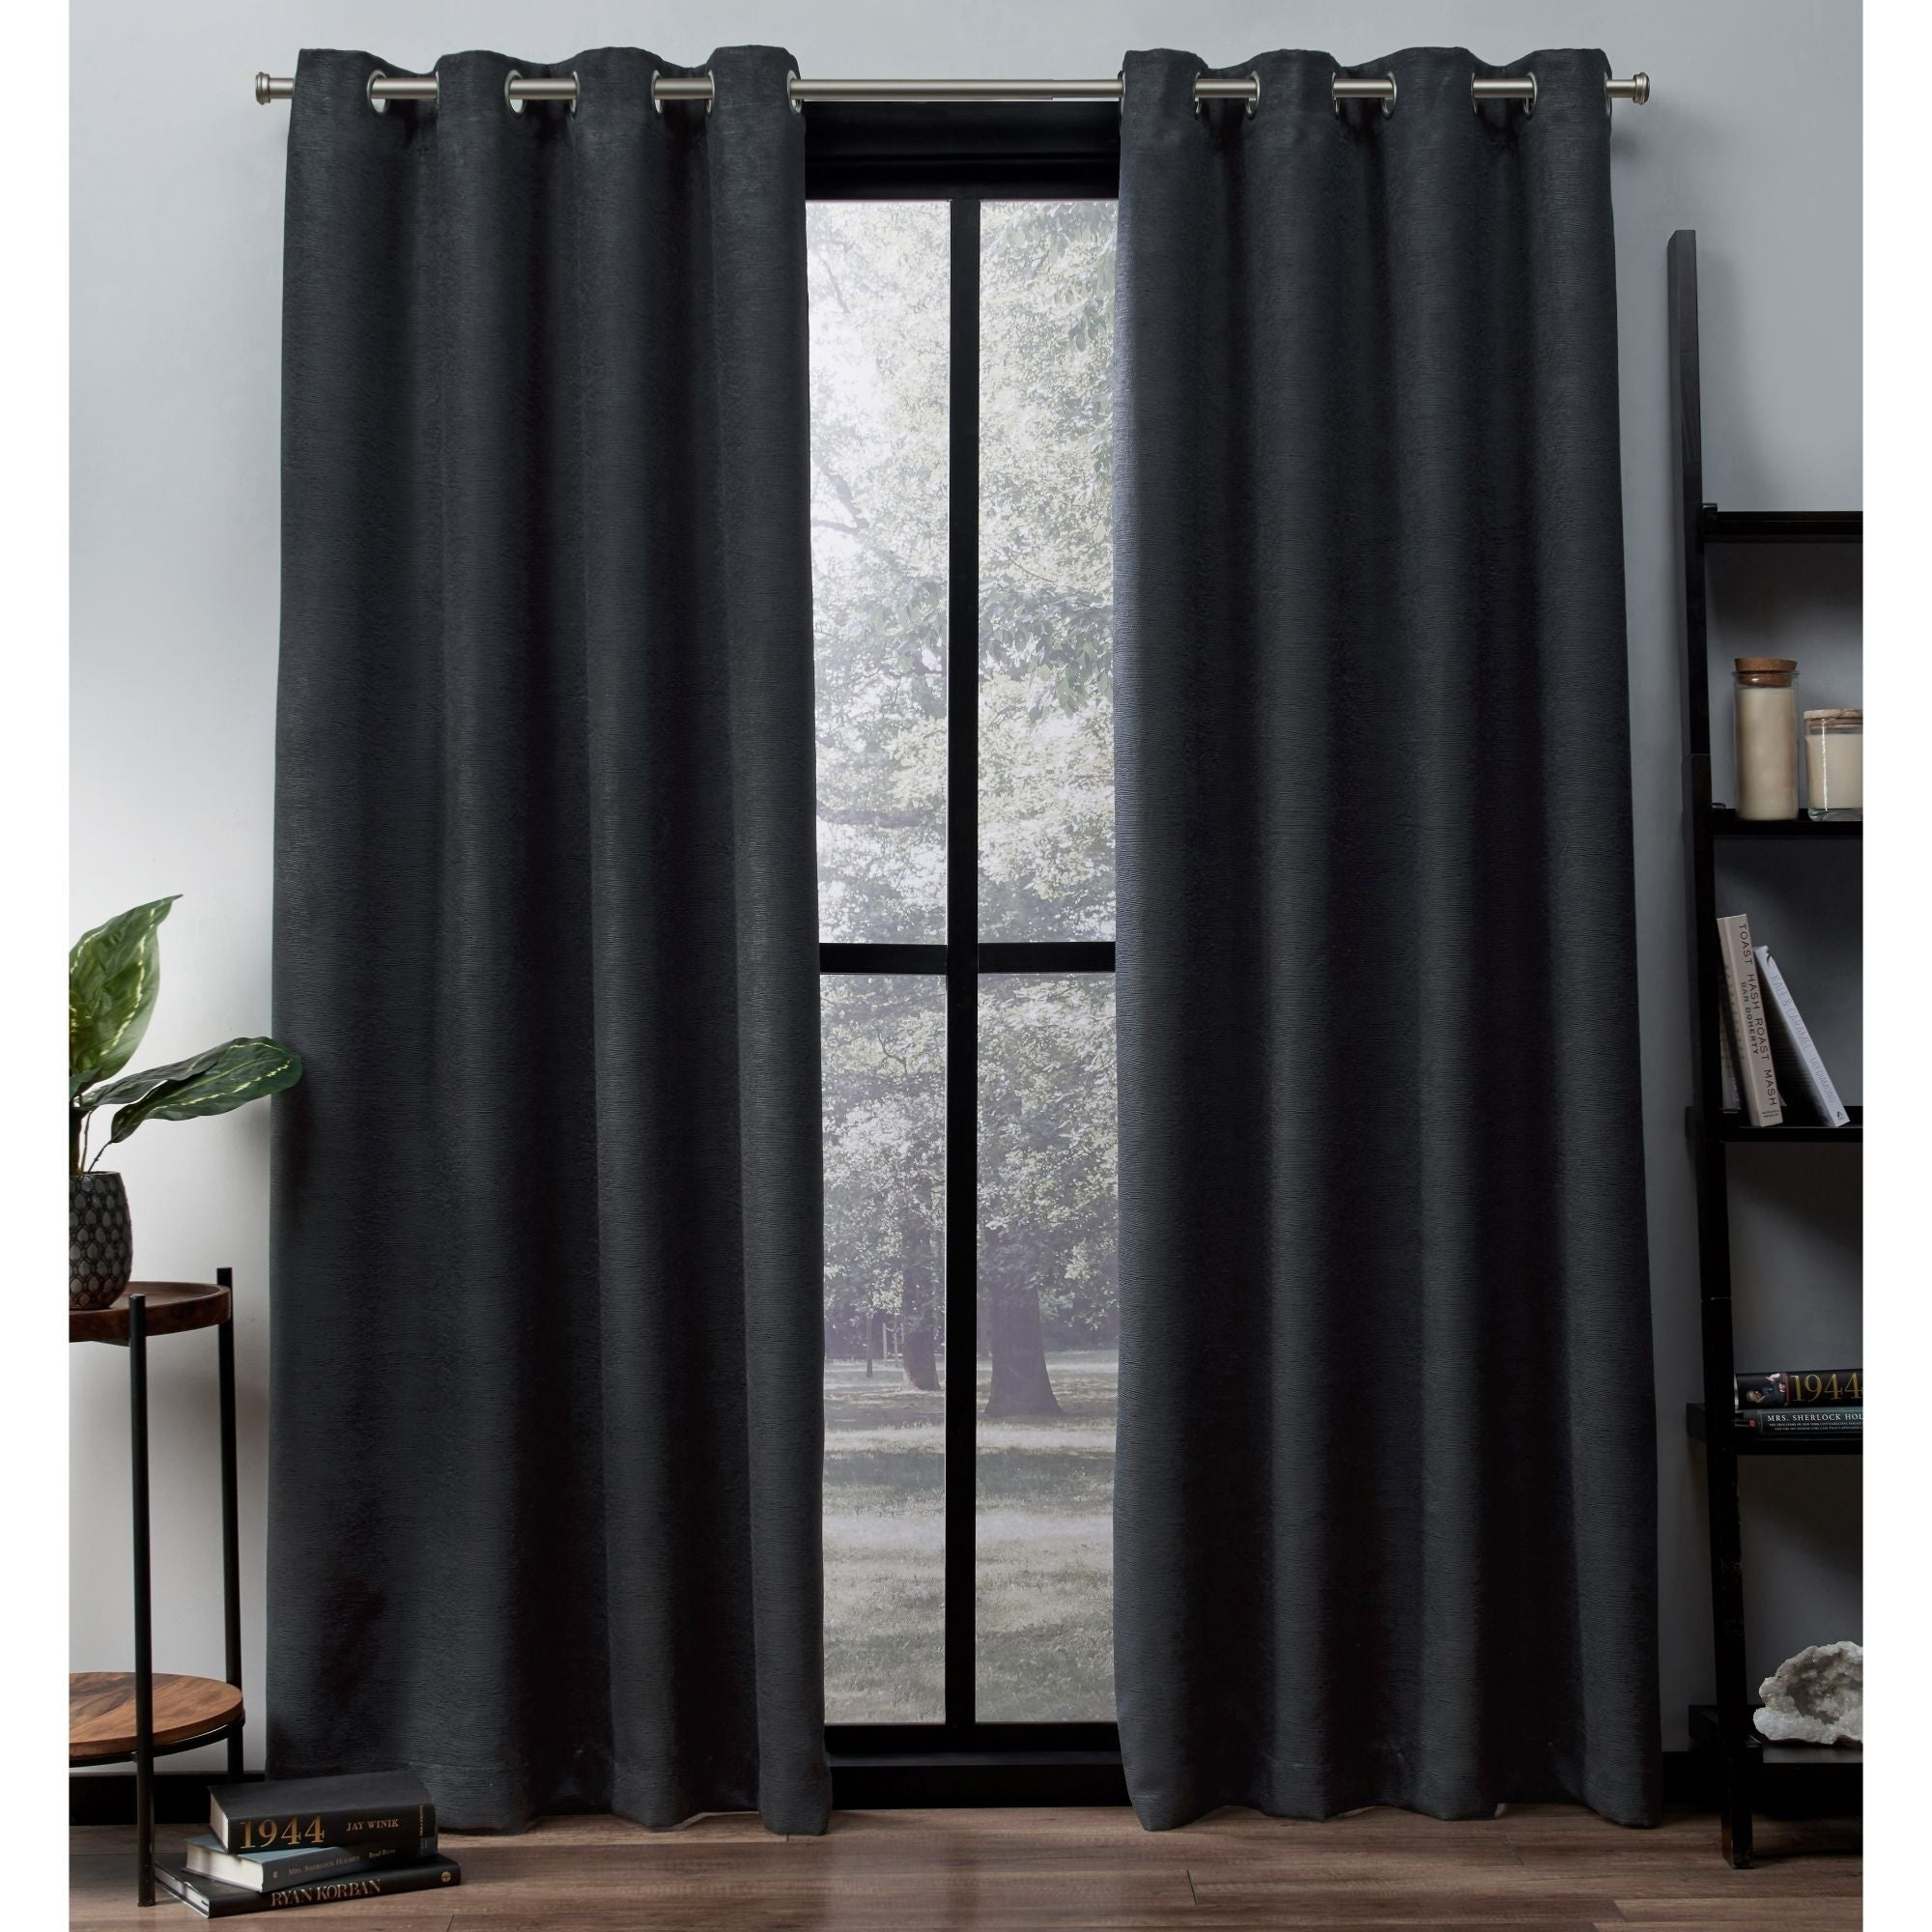 Ati Home Oxford Sateen Woven Blackout Grommet Top Curtain Panel Pair Regarding Oxford Sateen Woven Blackout Grommet Top Curtain Panel Pairs (View 3 of 20)